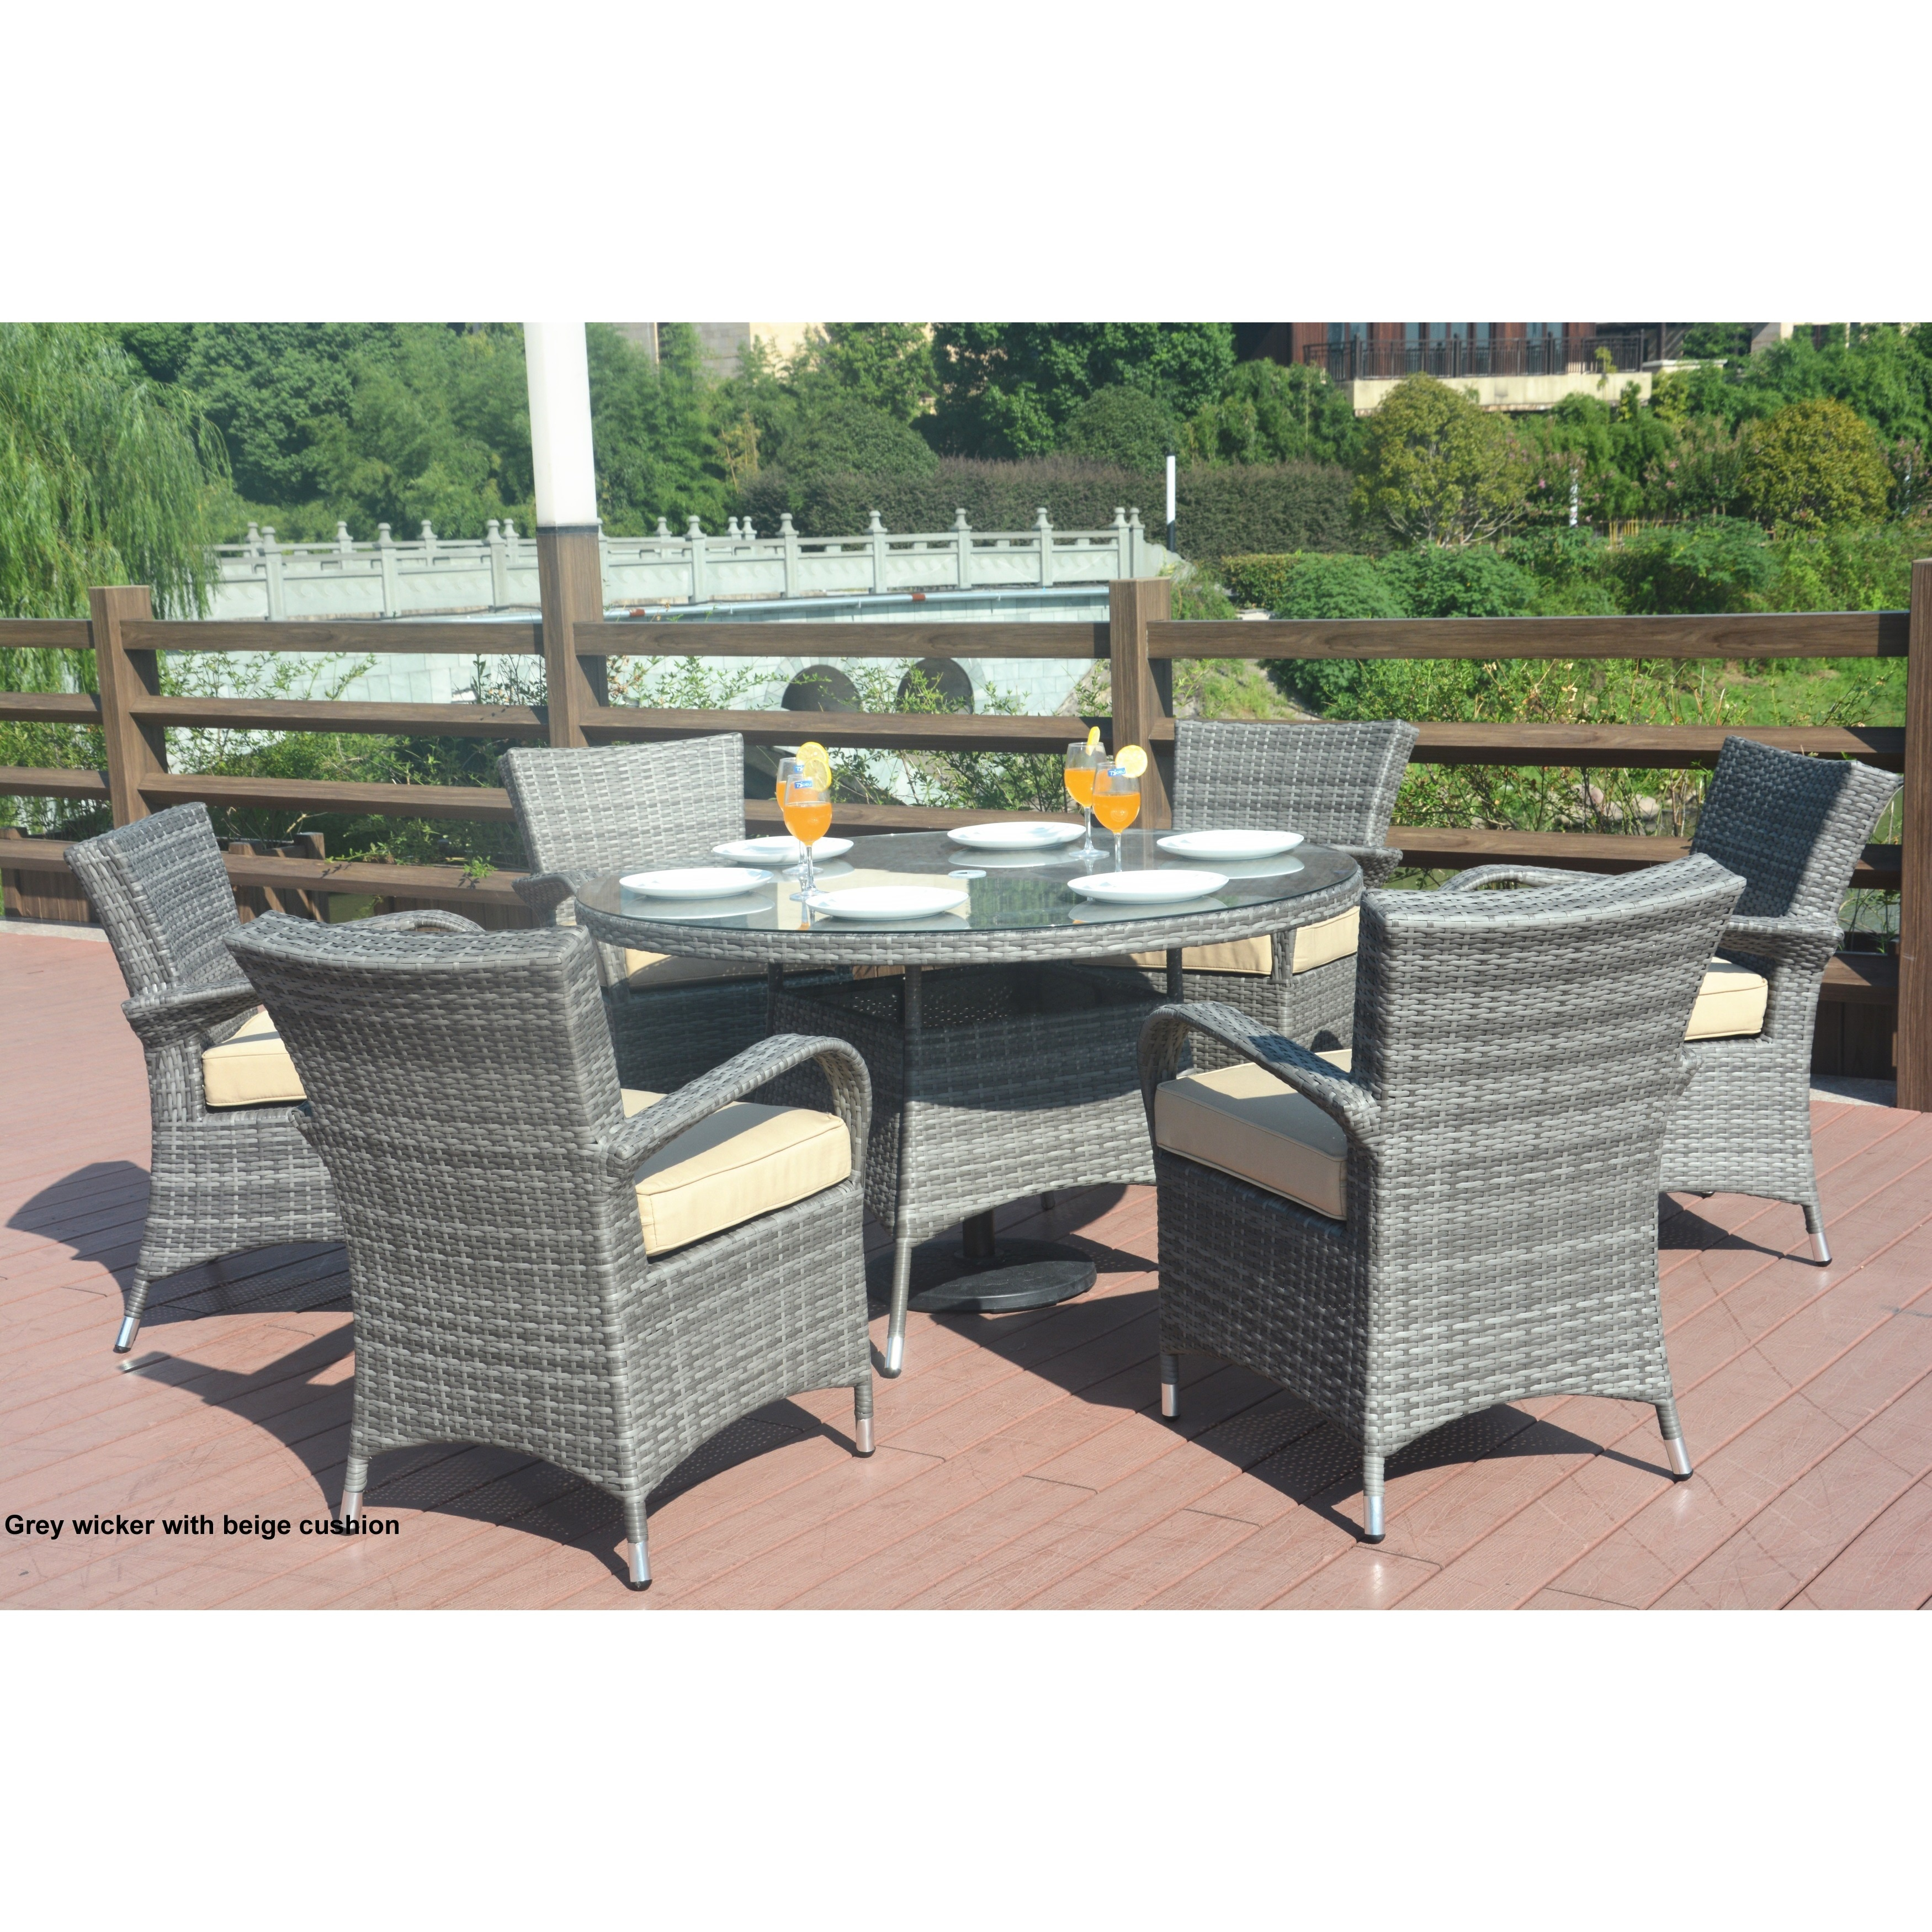 Round Patio Furniture Turin Round Outdoor 7 Piece Patio Wicker Dining Set With Eton Chairs By Direct Wicker